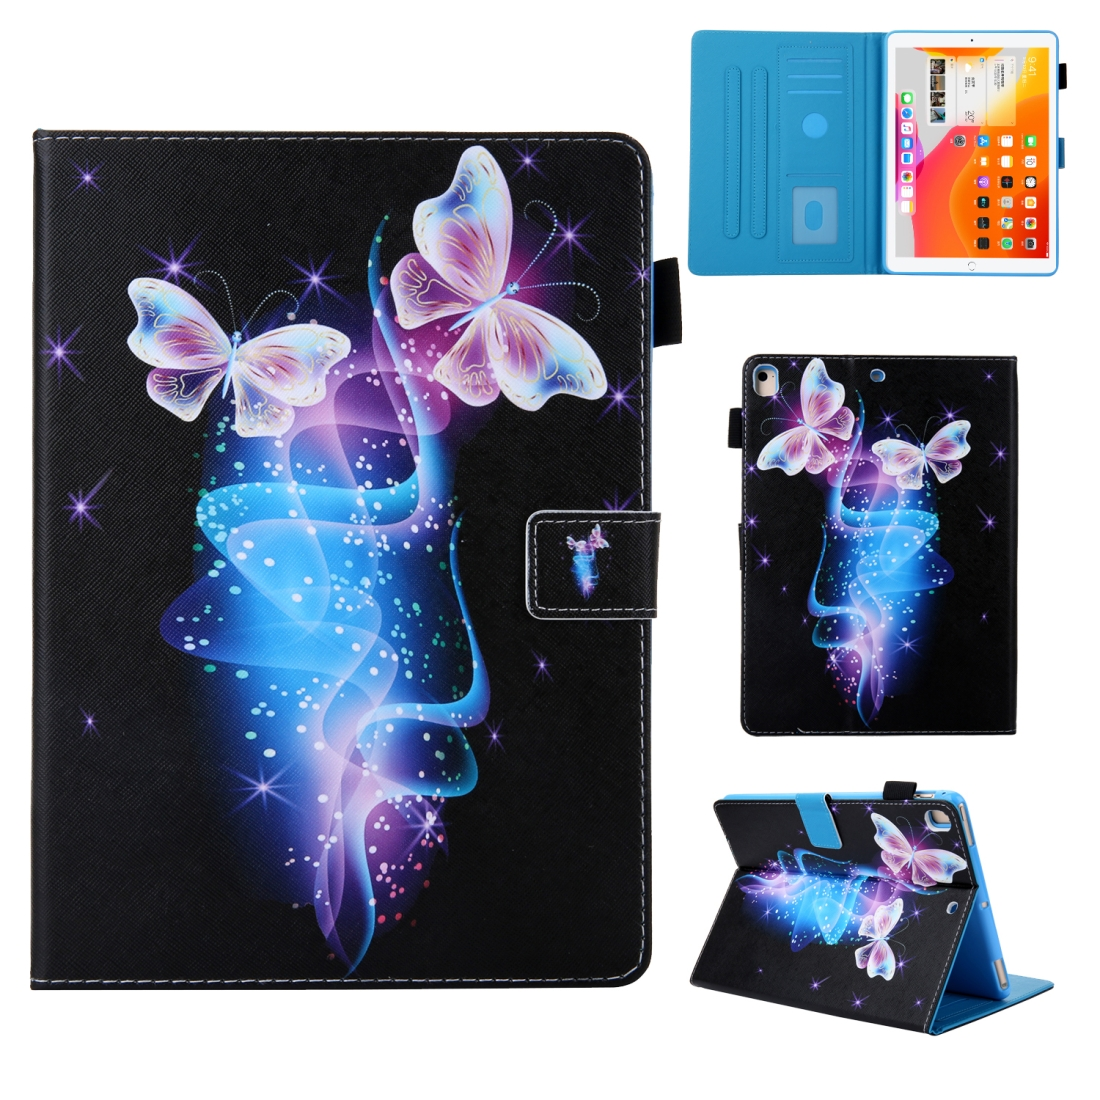 iPad 10.5 Case Colorful Design Leather Case with Sleeve (Butterfly)